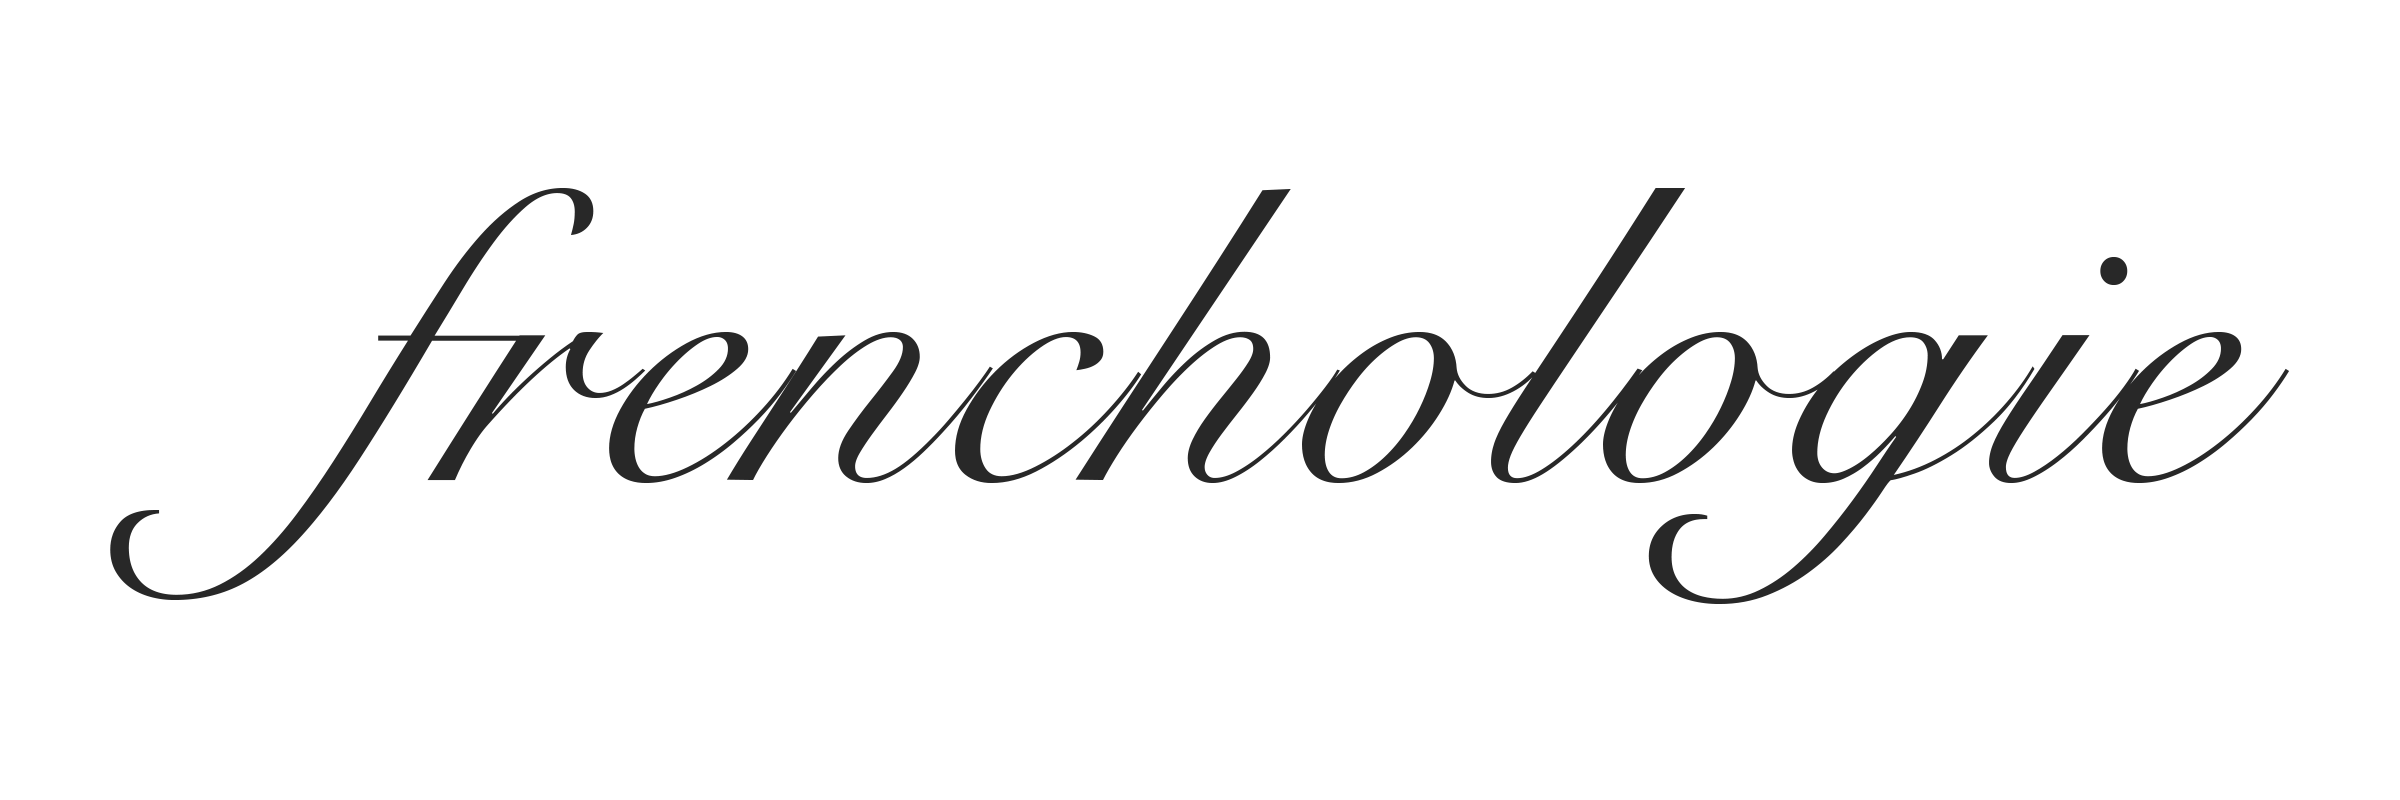 Frenchologie logo.png